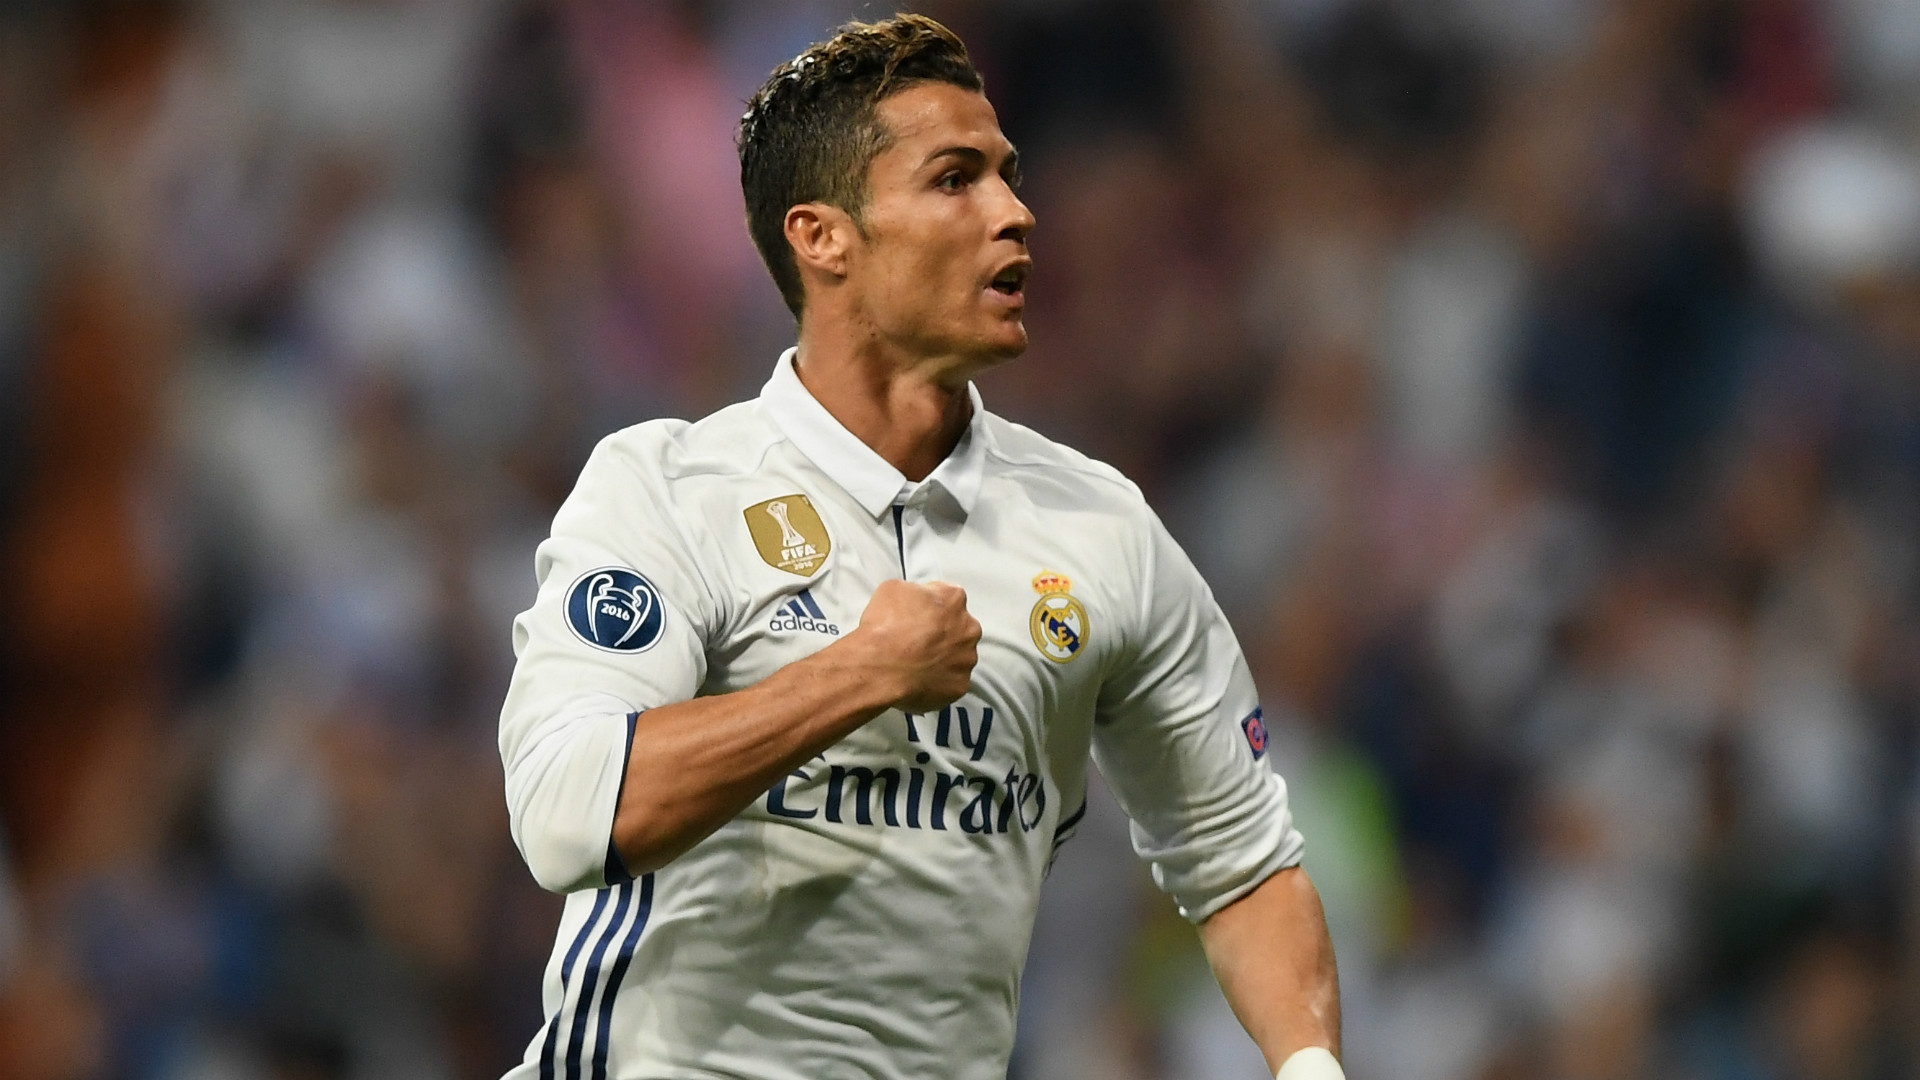 Cristiano Ronaldo How much does he make in a week Is he better